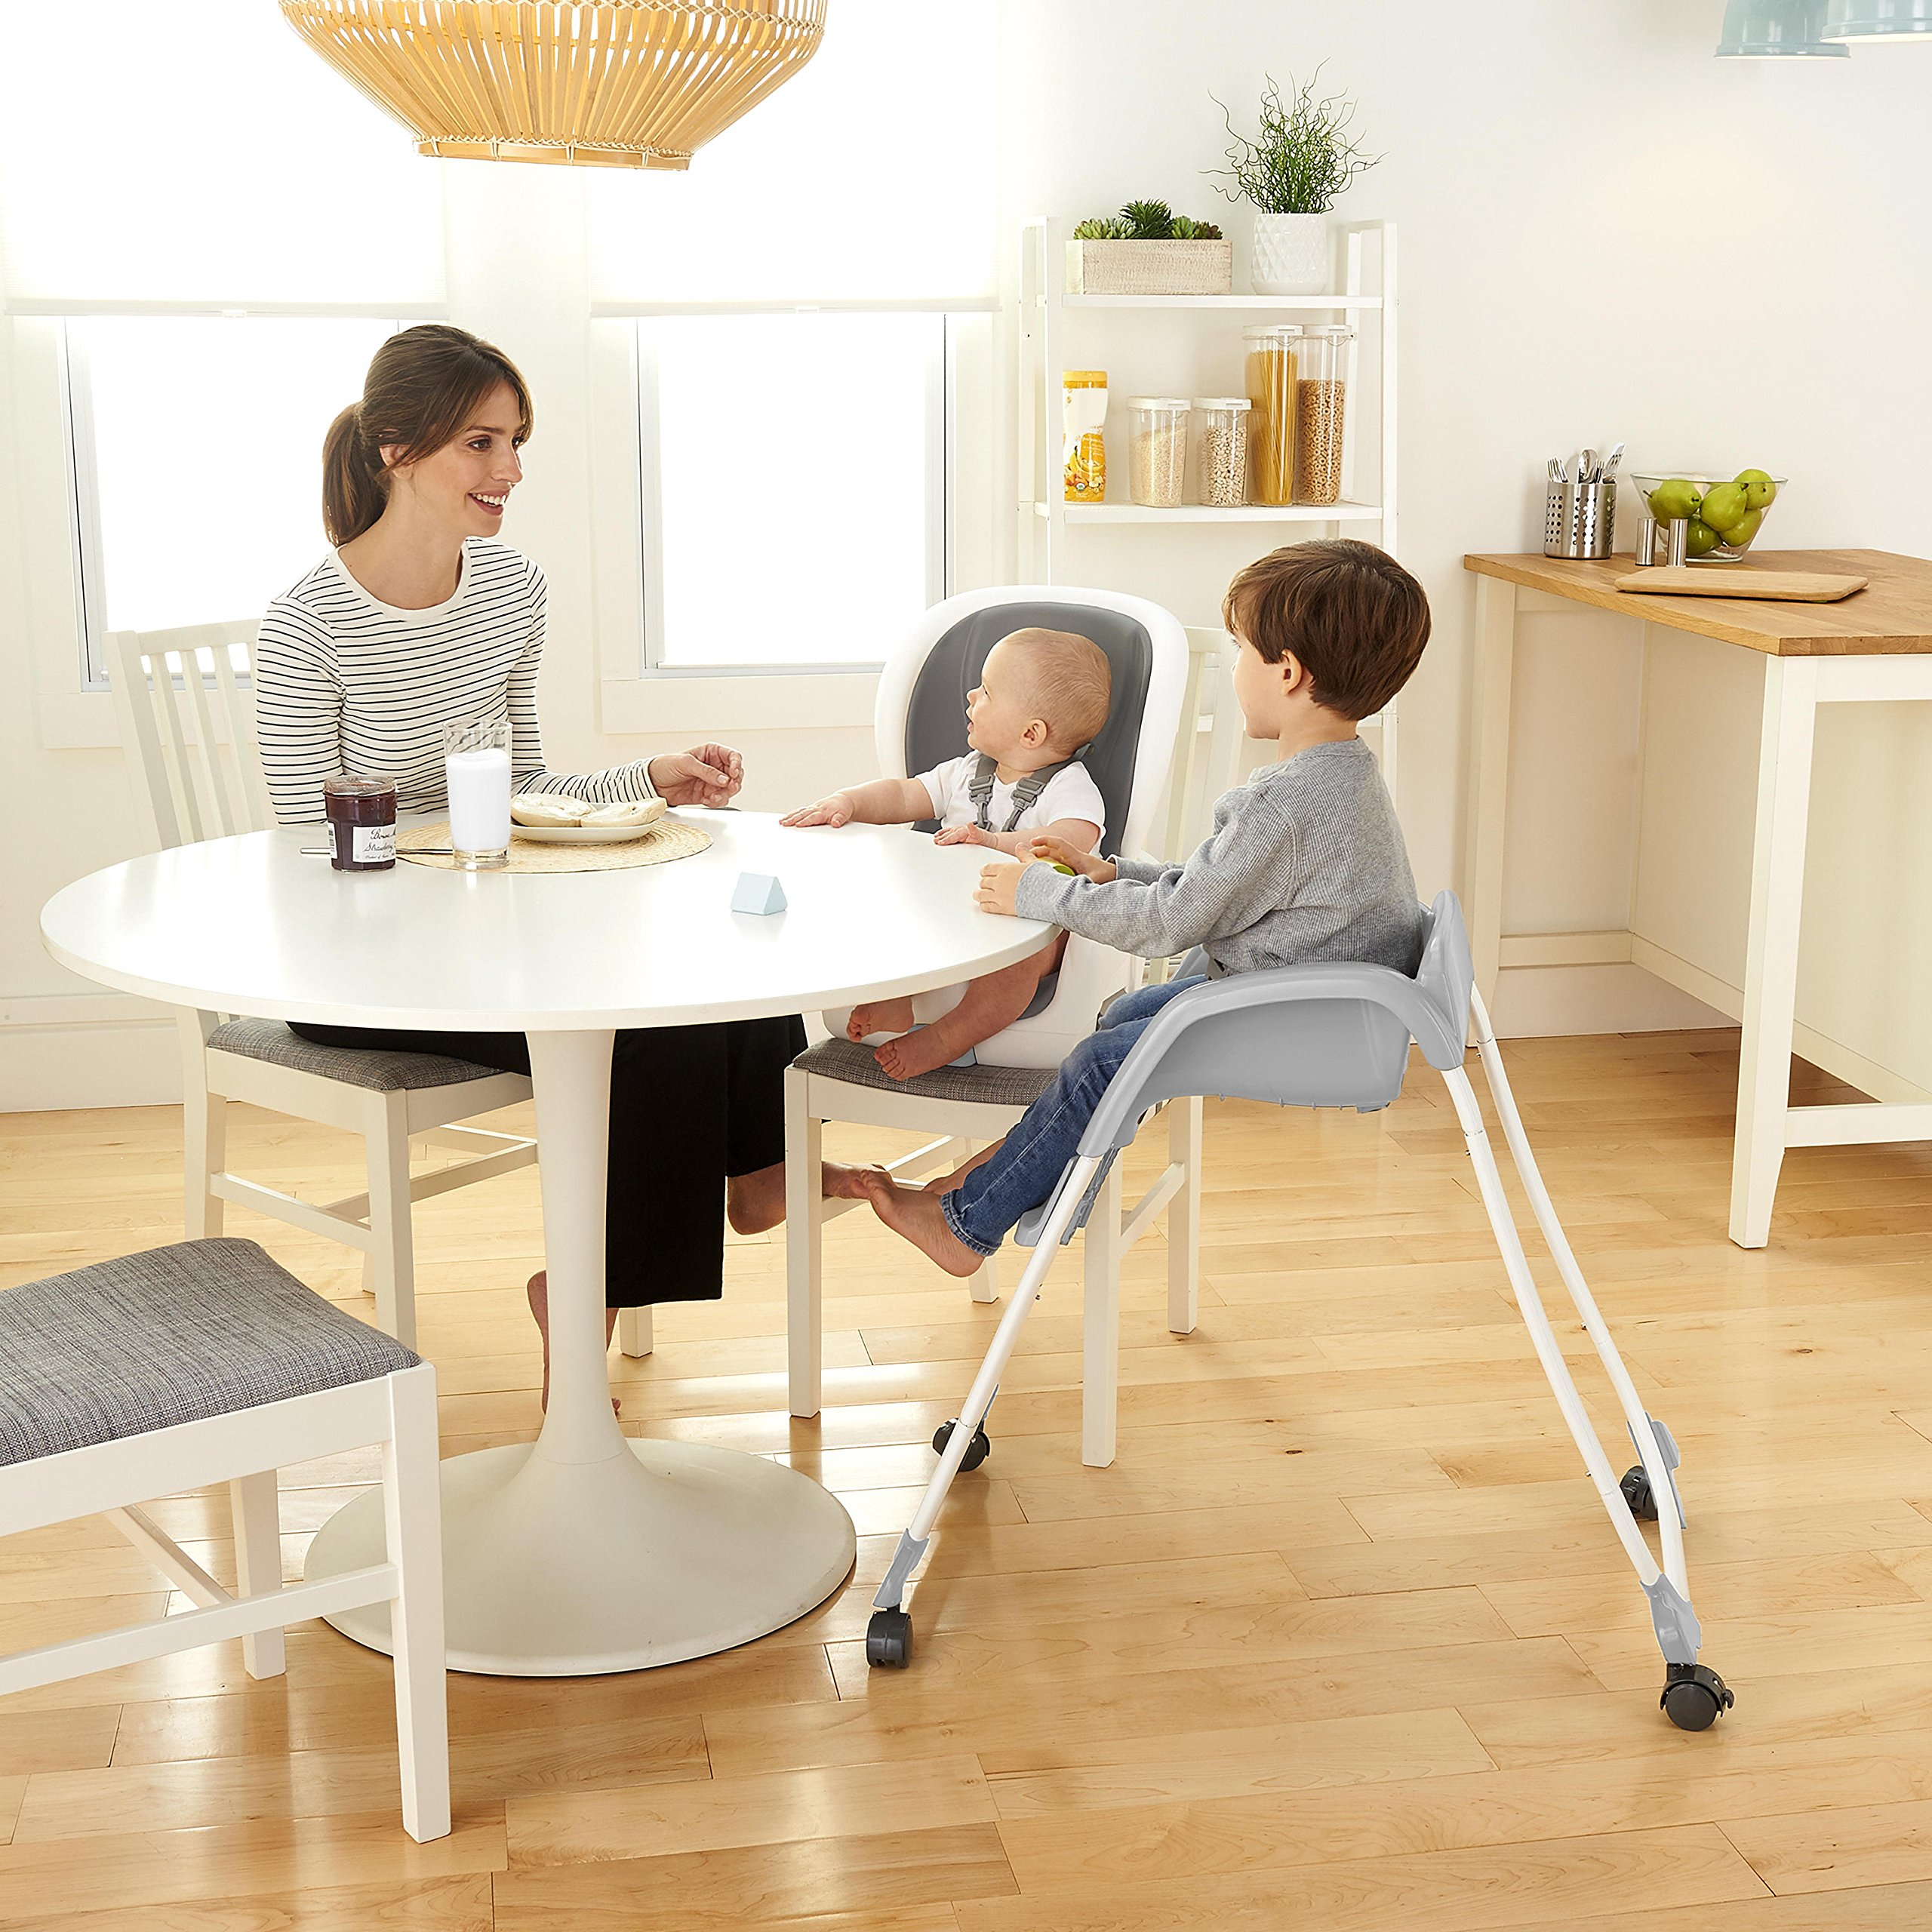 Ingenuity SmartClean Trio Elite 3-in-1 High Chair - Slate - High Chair, Toddler Chair, and Booster by Ingenuity (Image #10)